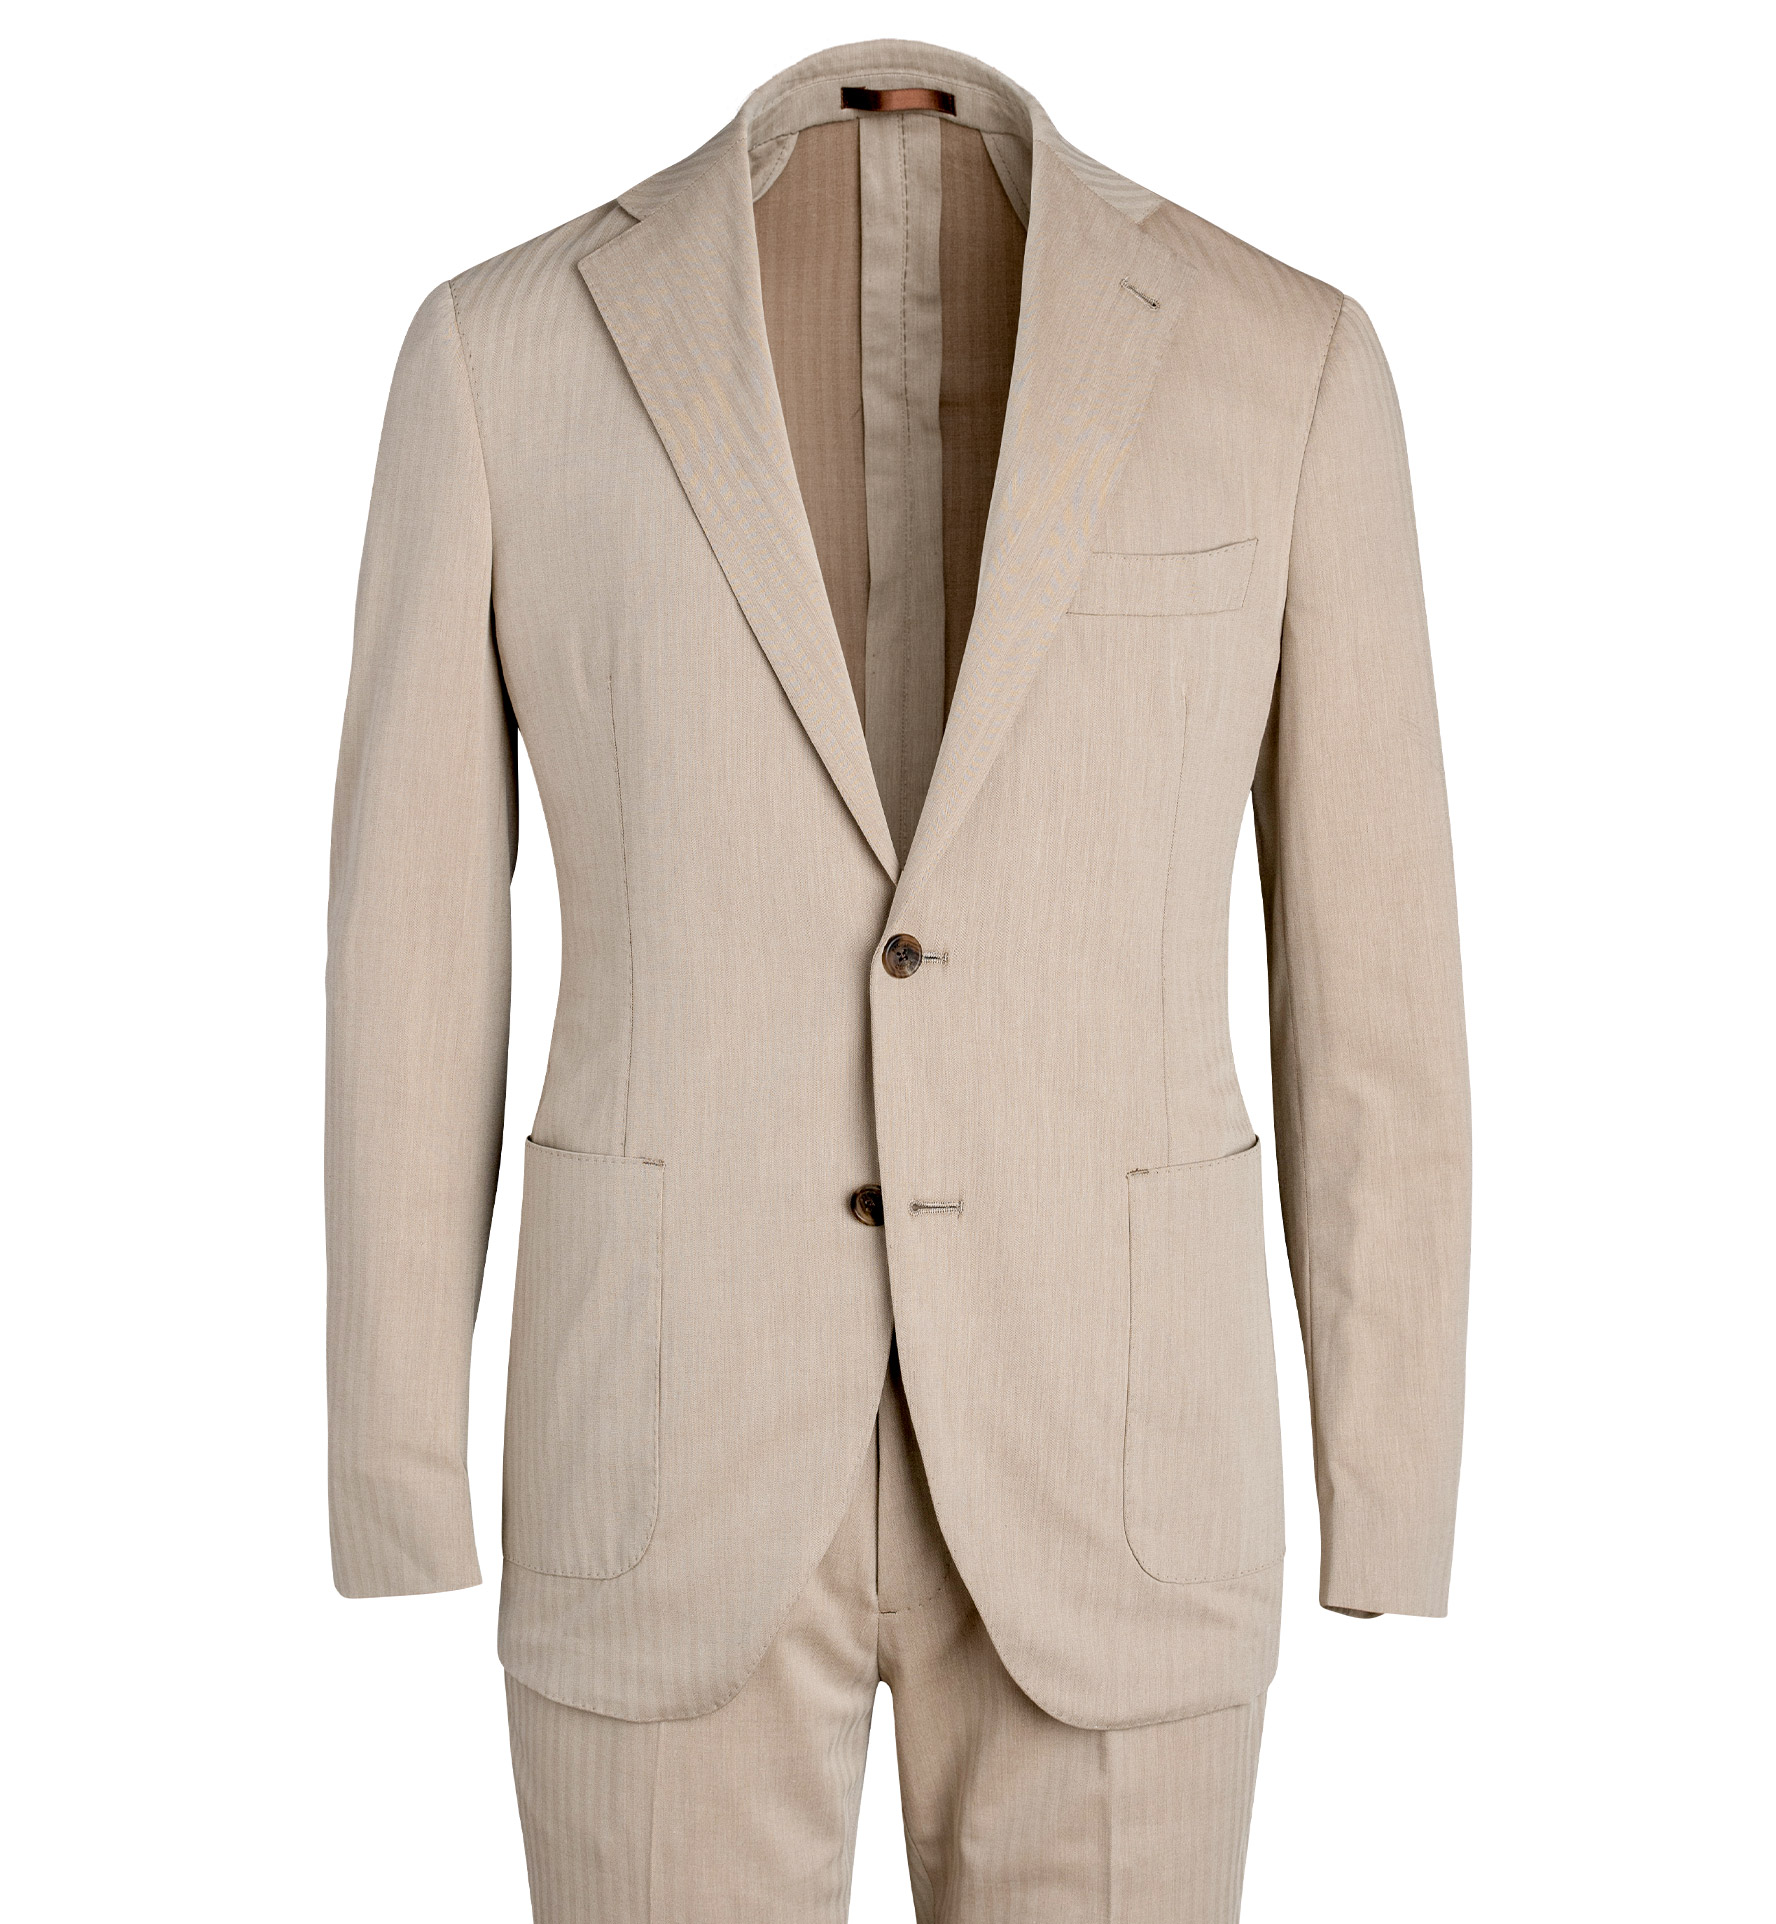 Zoom Image of Bedford Beige Wool and Cotton Solaro Suit